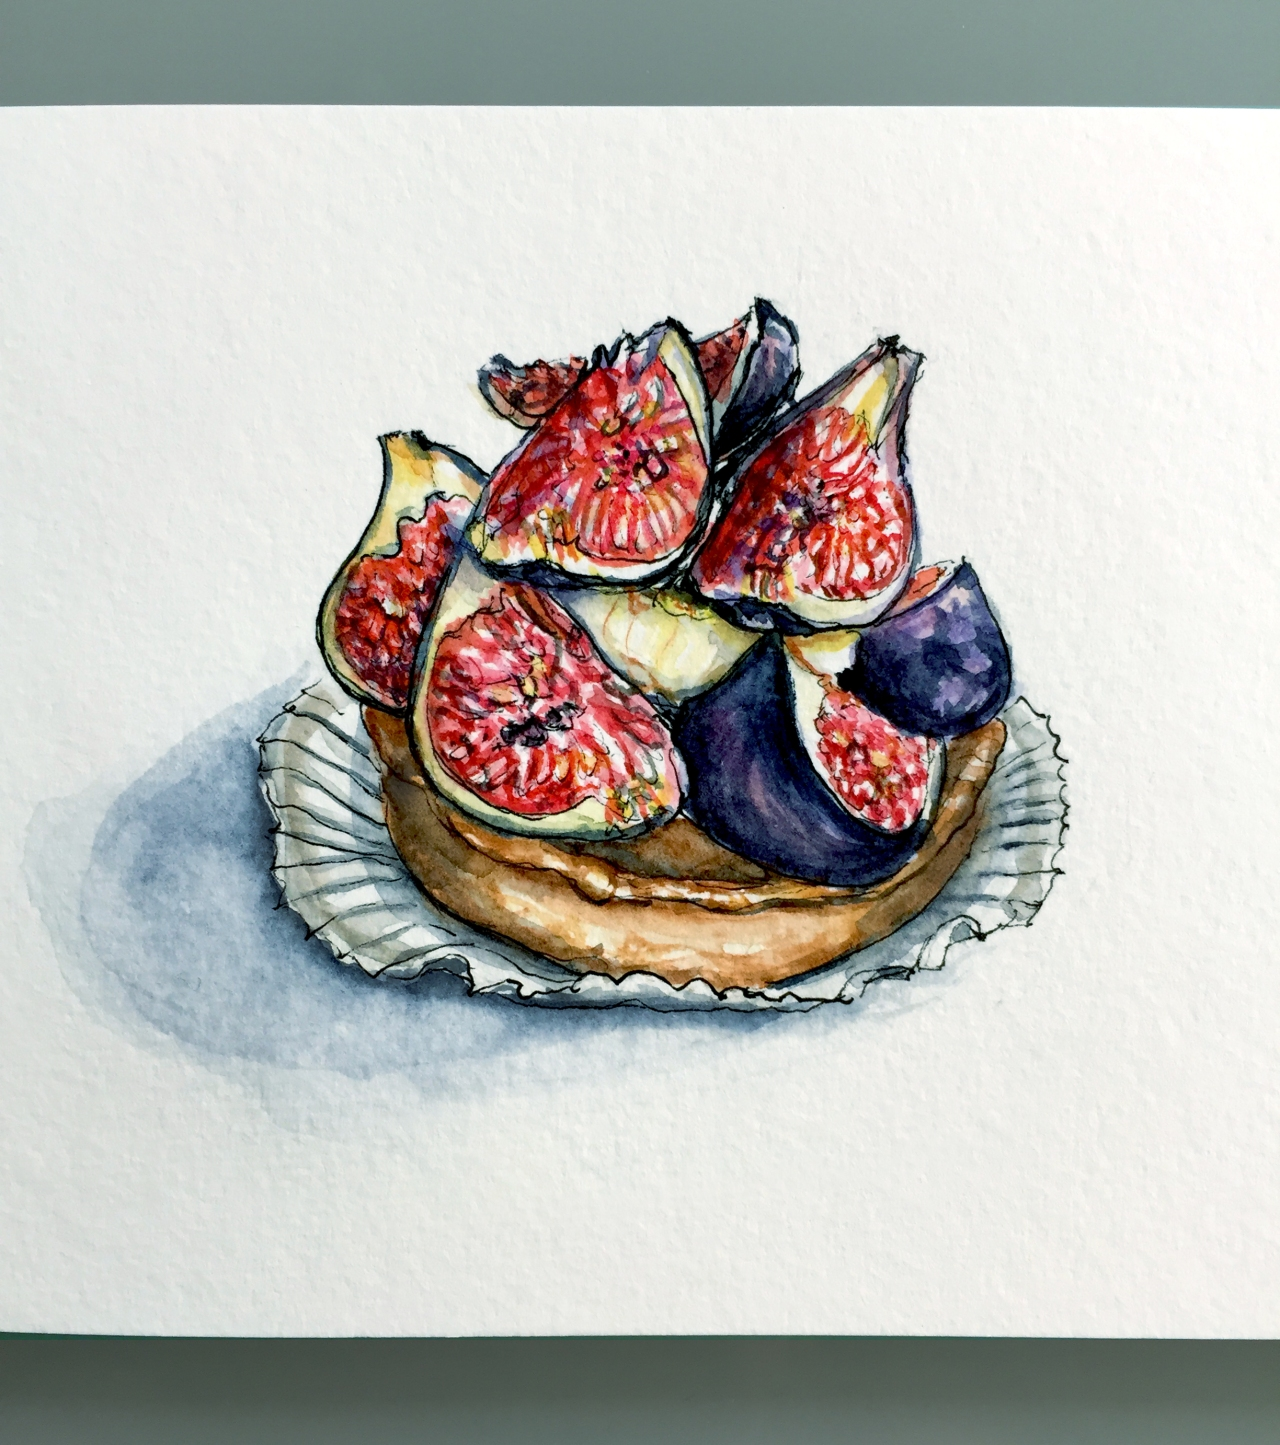 day-26-tarte-aux-figues